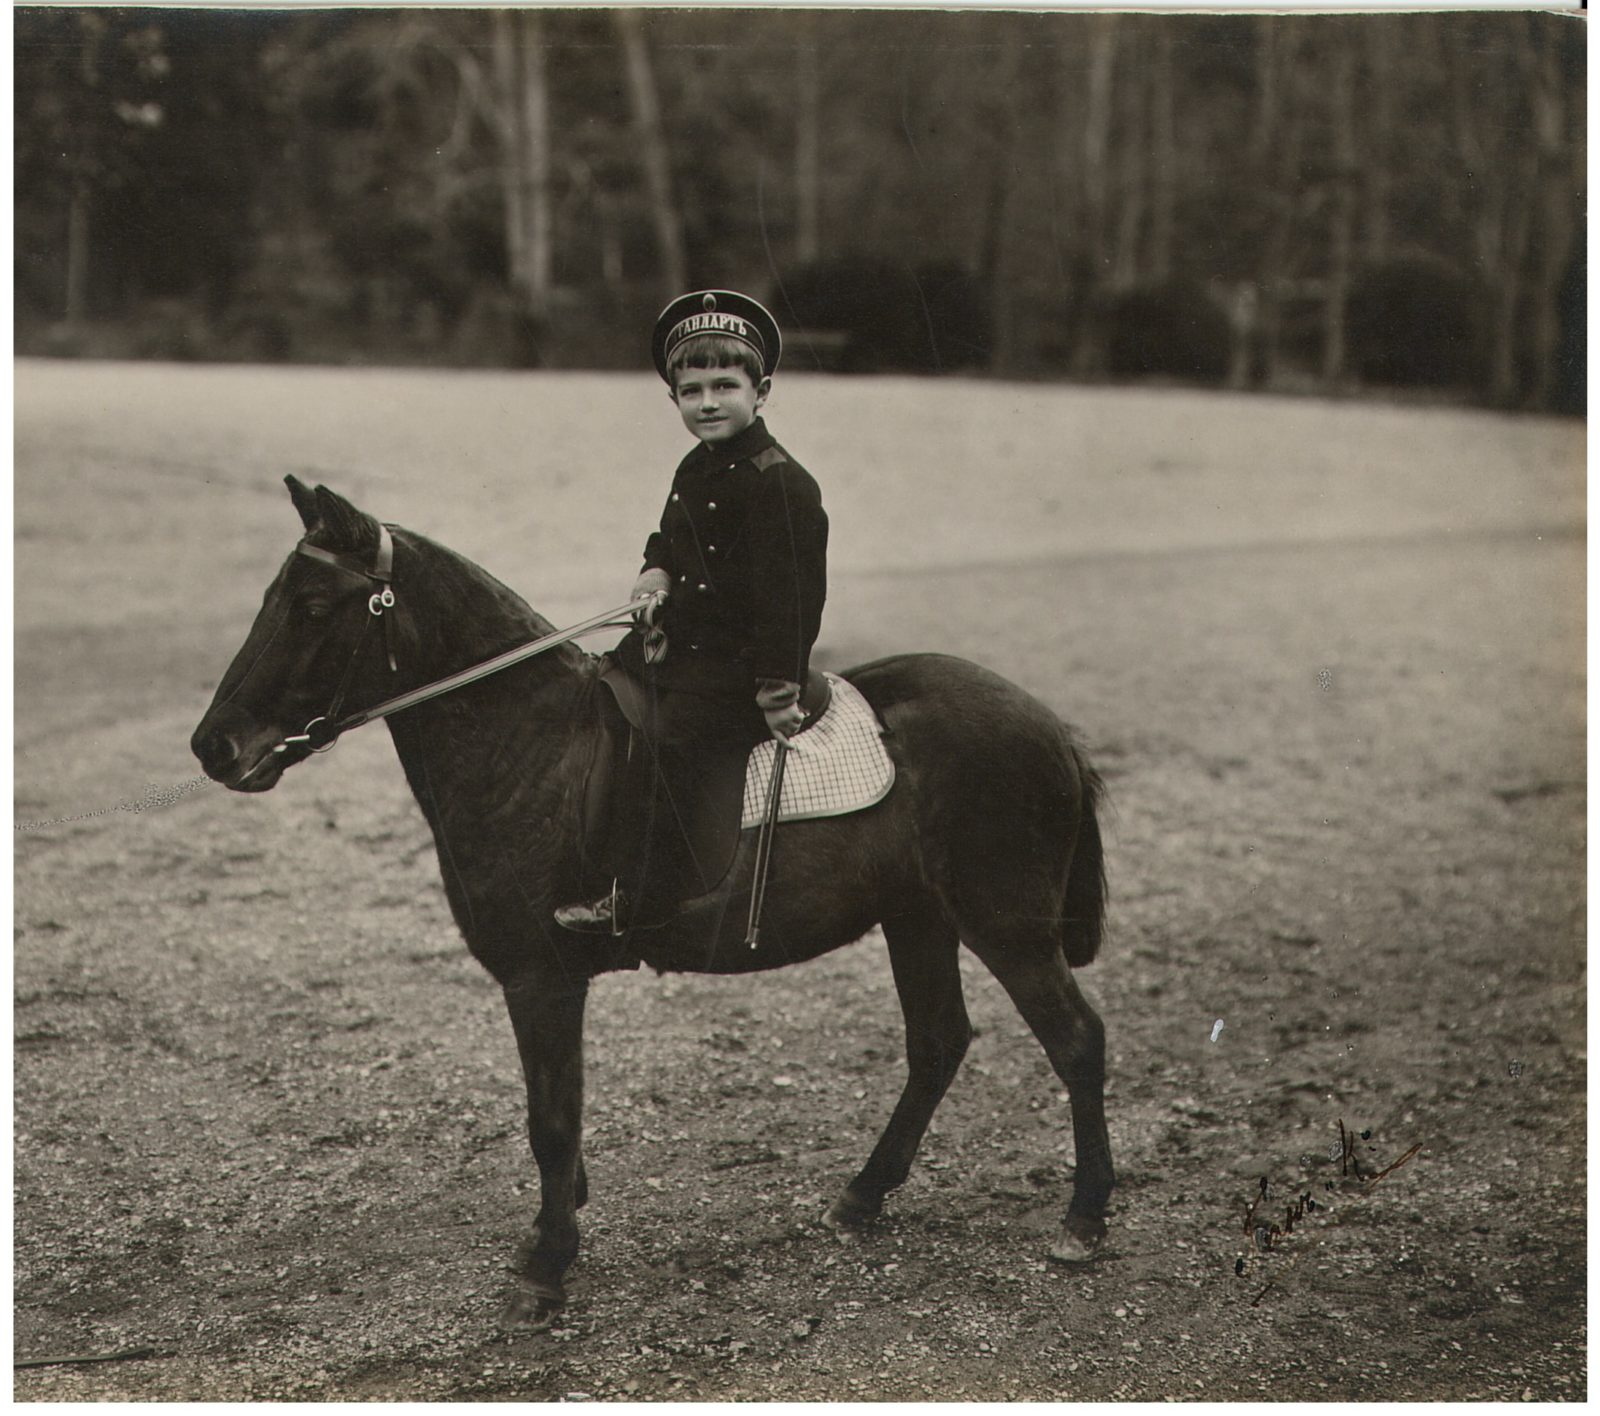 Tsarevich Alexey Nikolayevich is riding a pony.